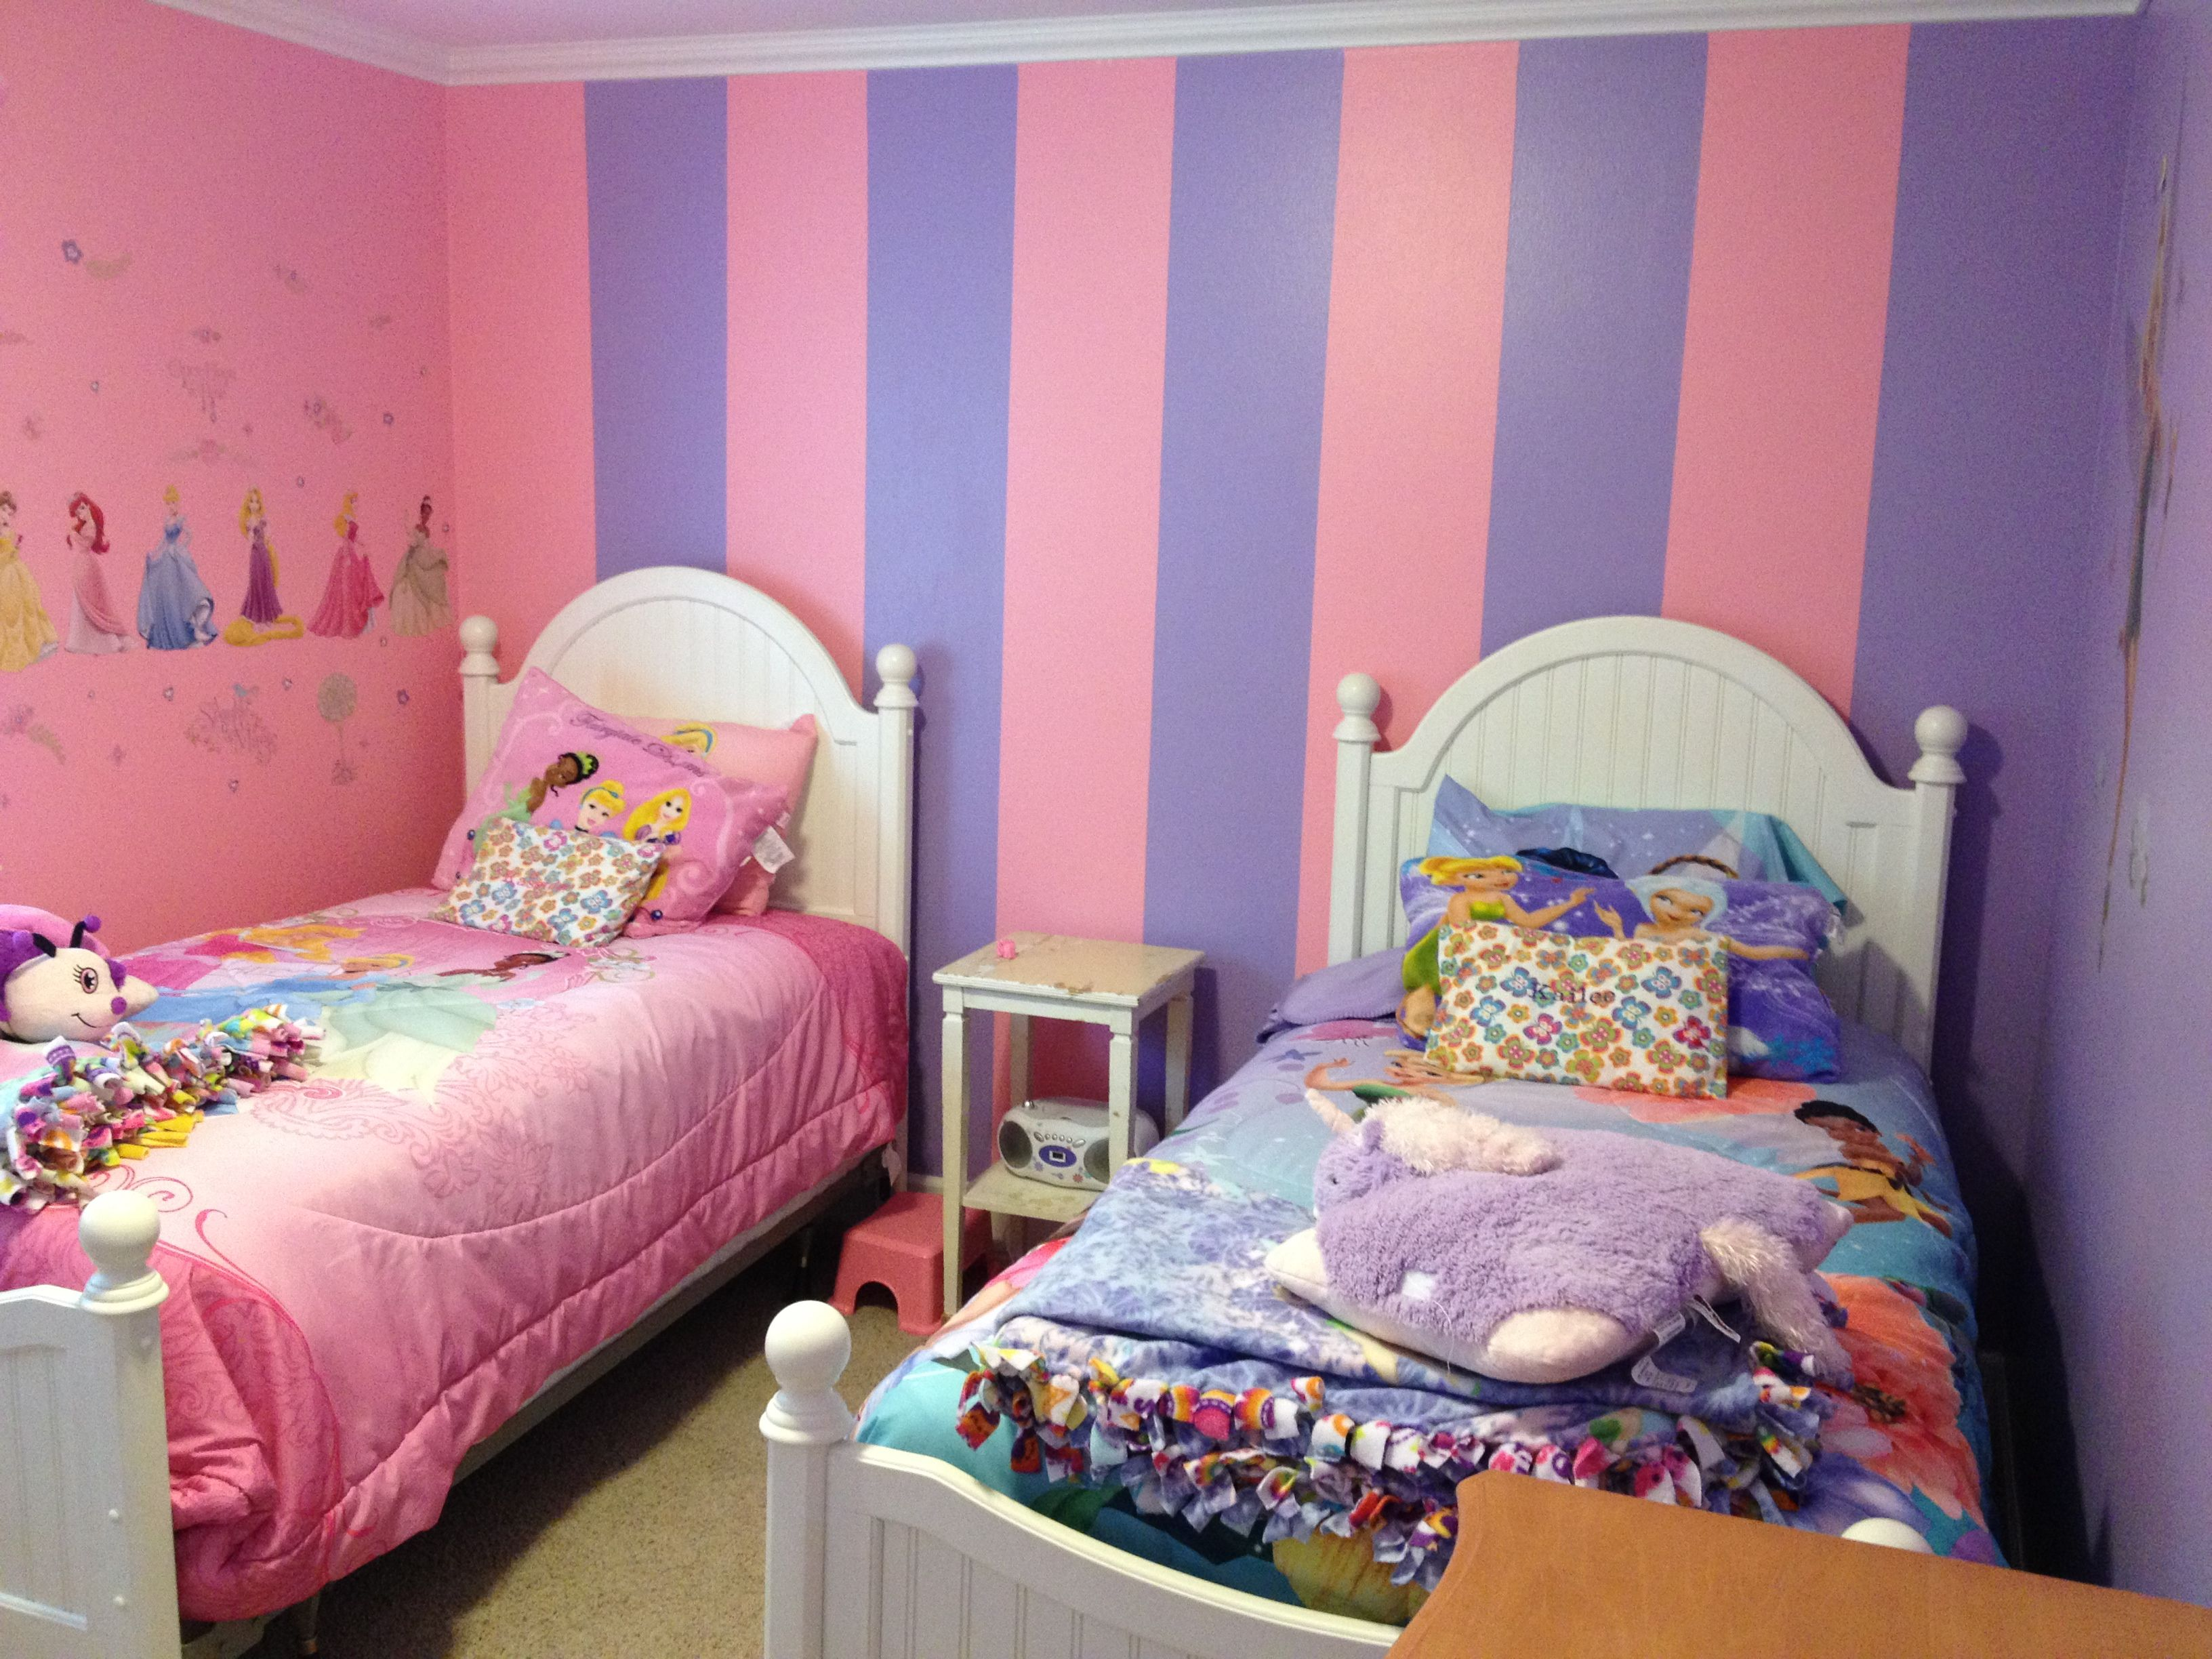 Room for twin girls e wall is pink and one purple e wall has